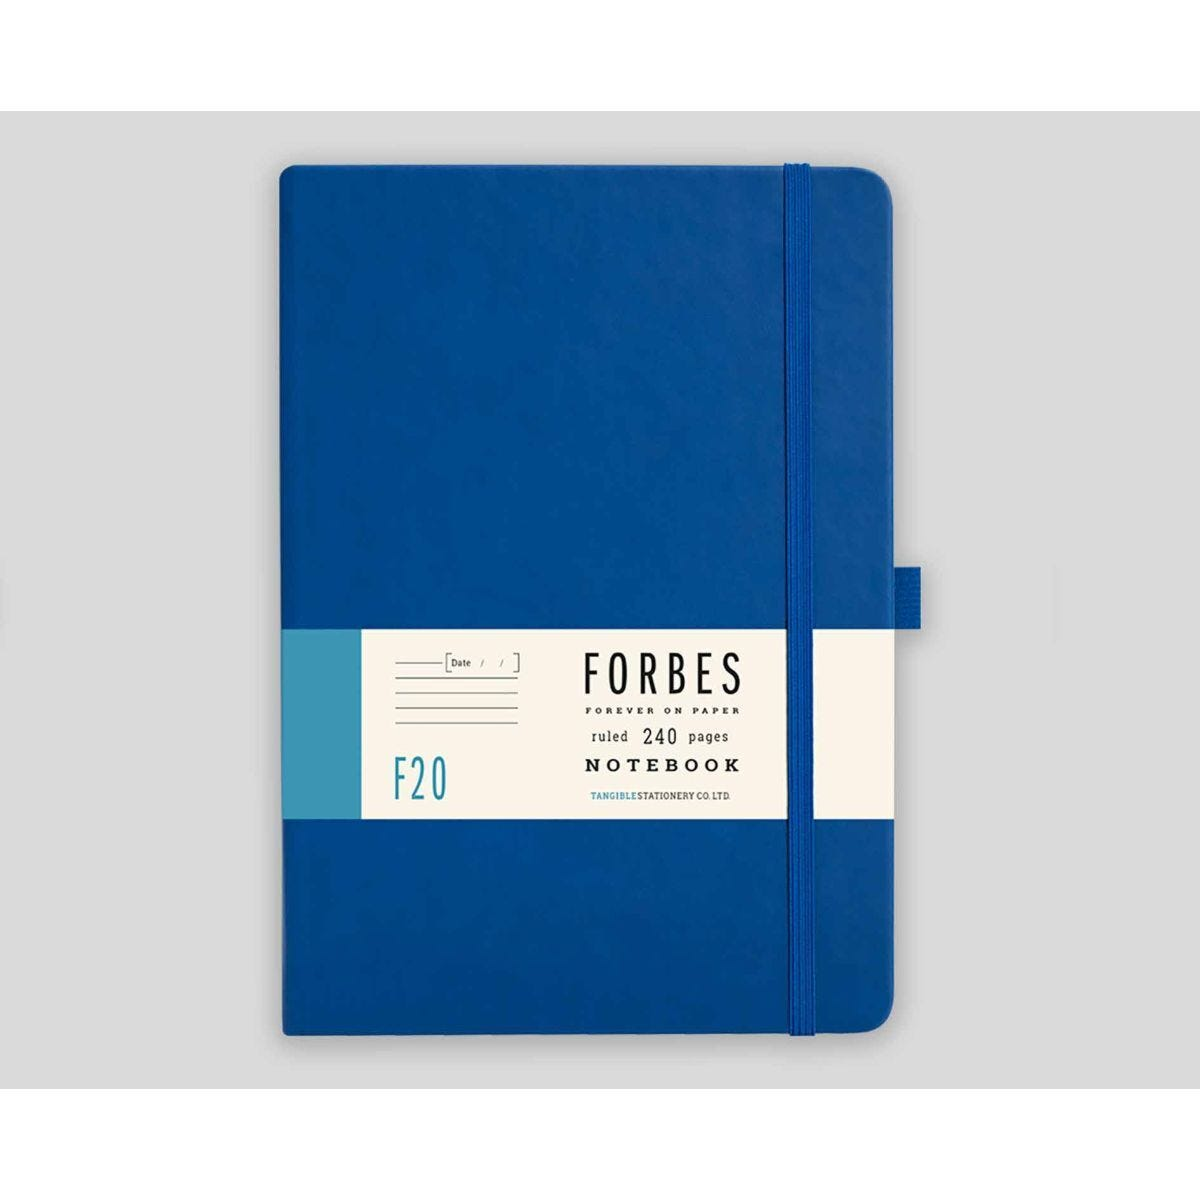 FORBES Classic Hard Cover Notebook Ruled A5 240 Pages Blue